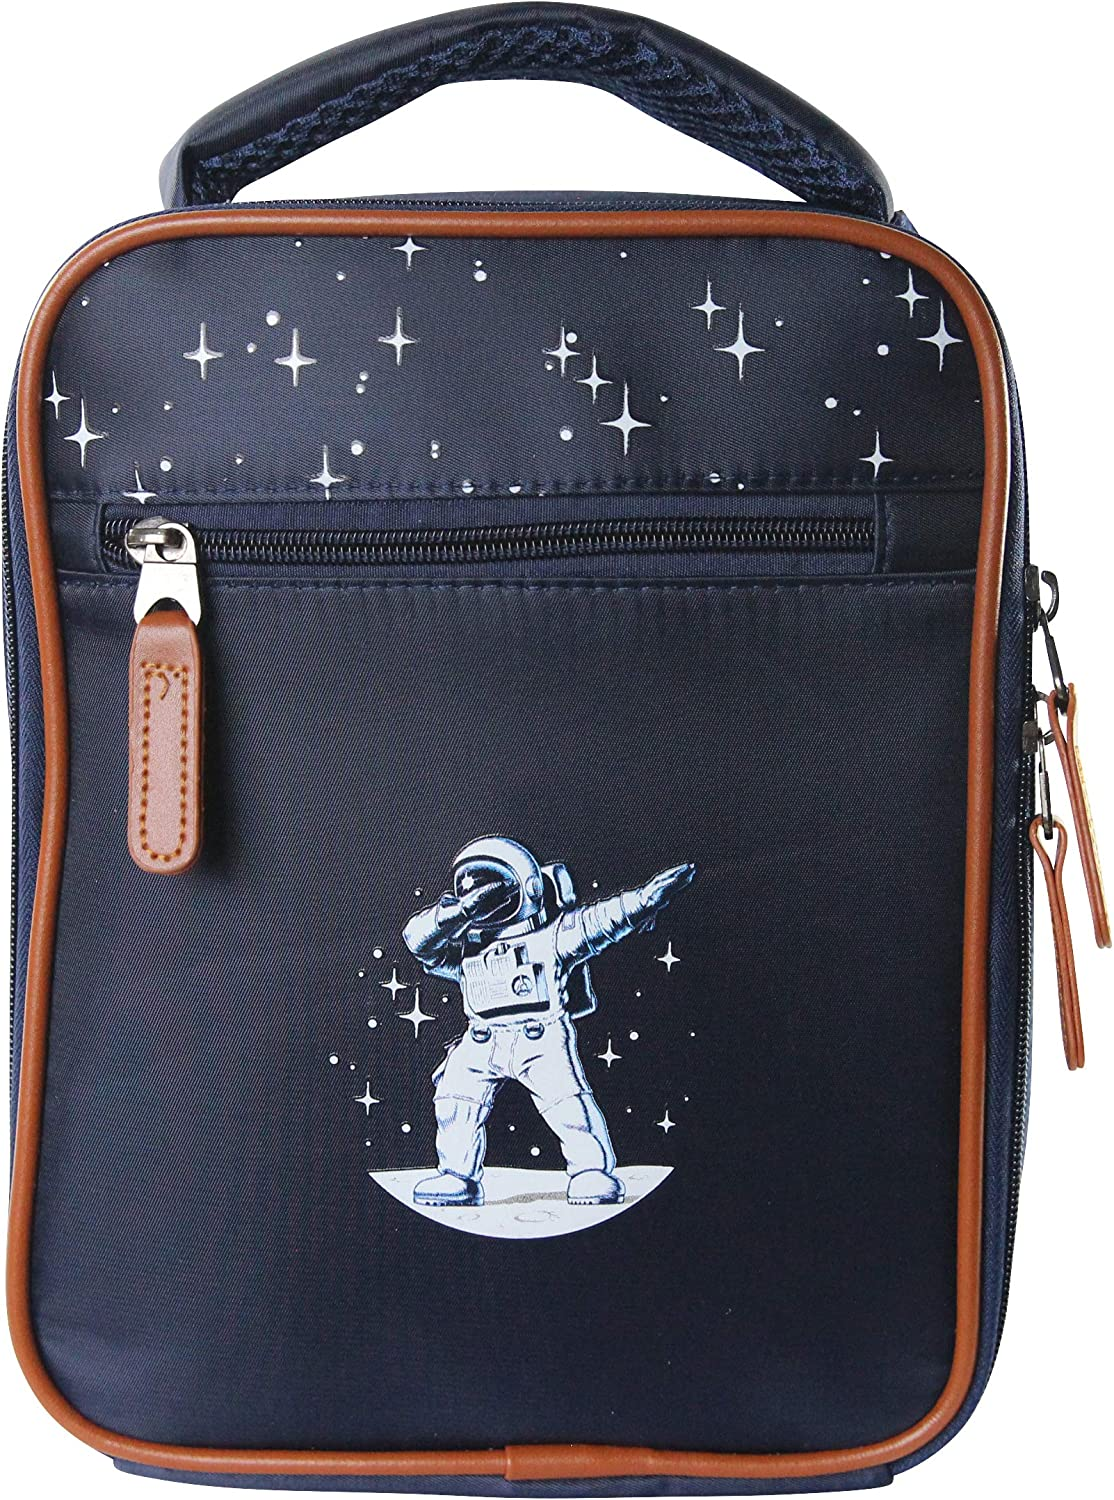 LUNCH BOX BAG GALAXY High quality new DUBBING THERMA Dedication SPACE INSULATED COOLER